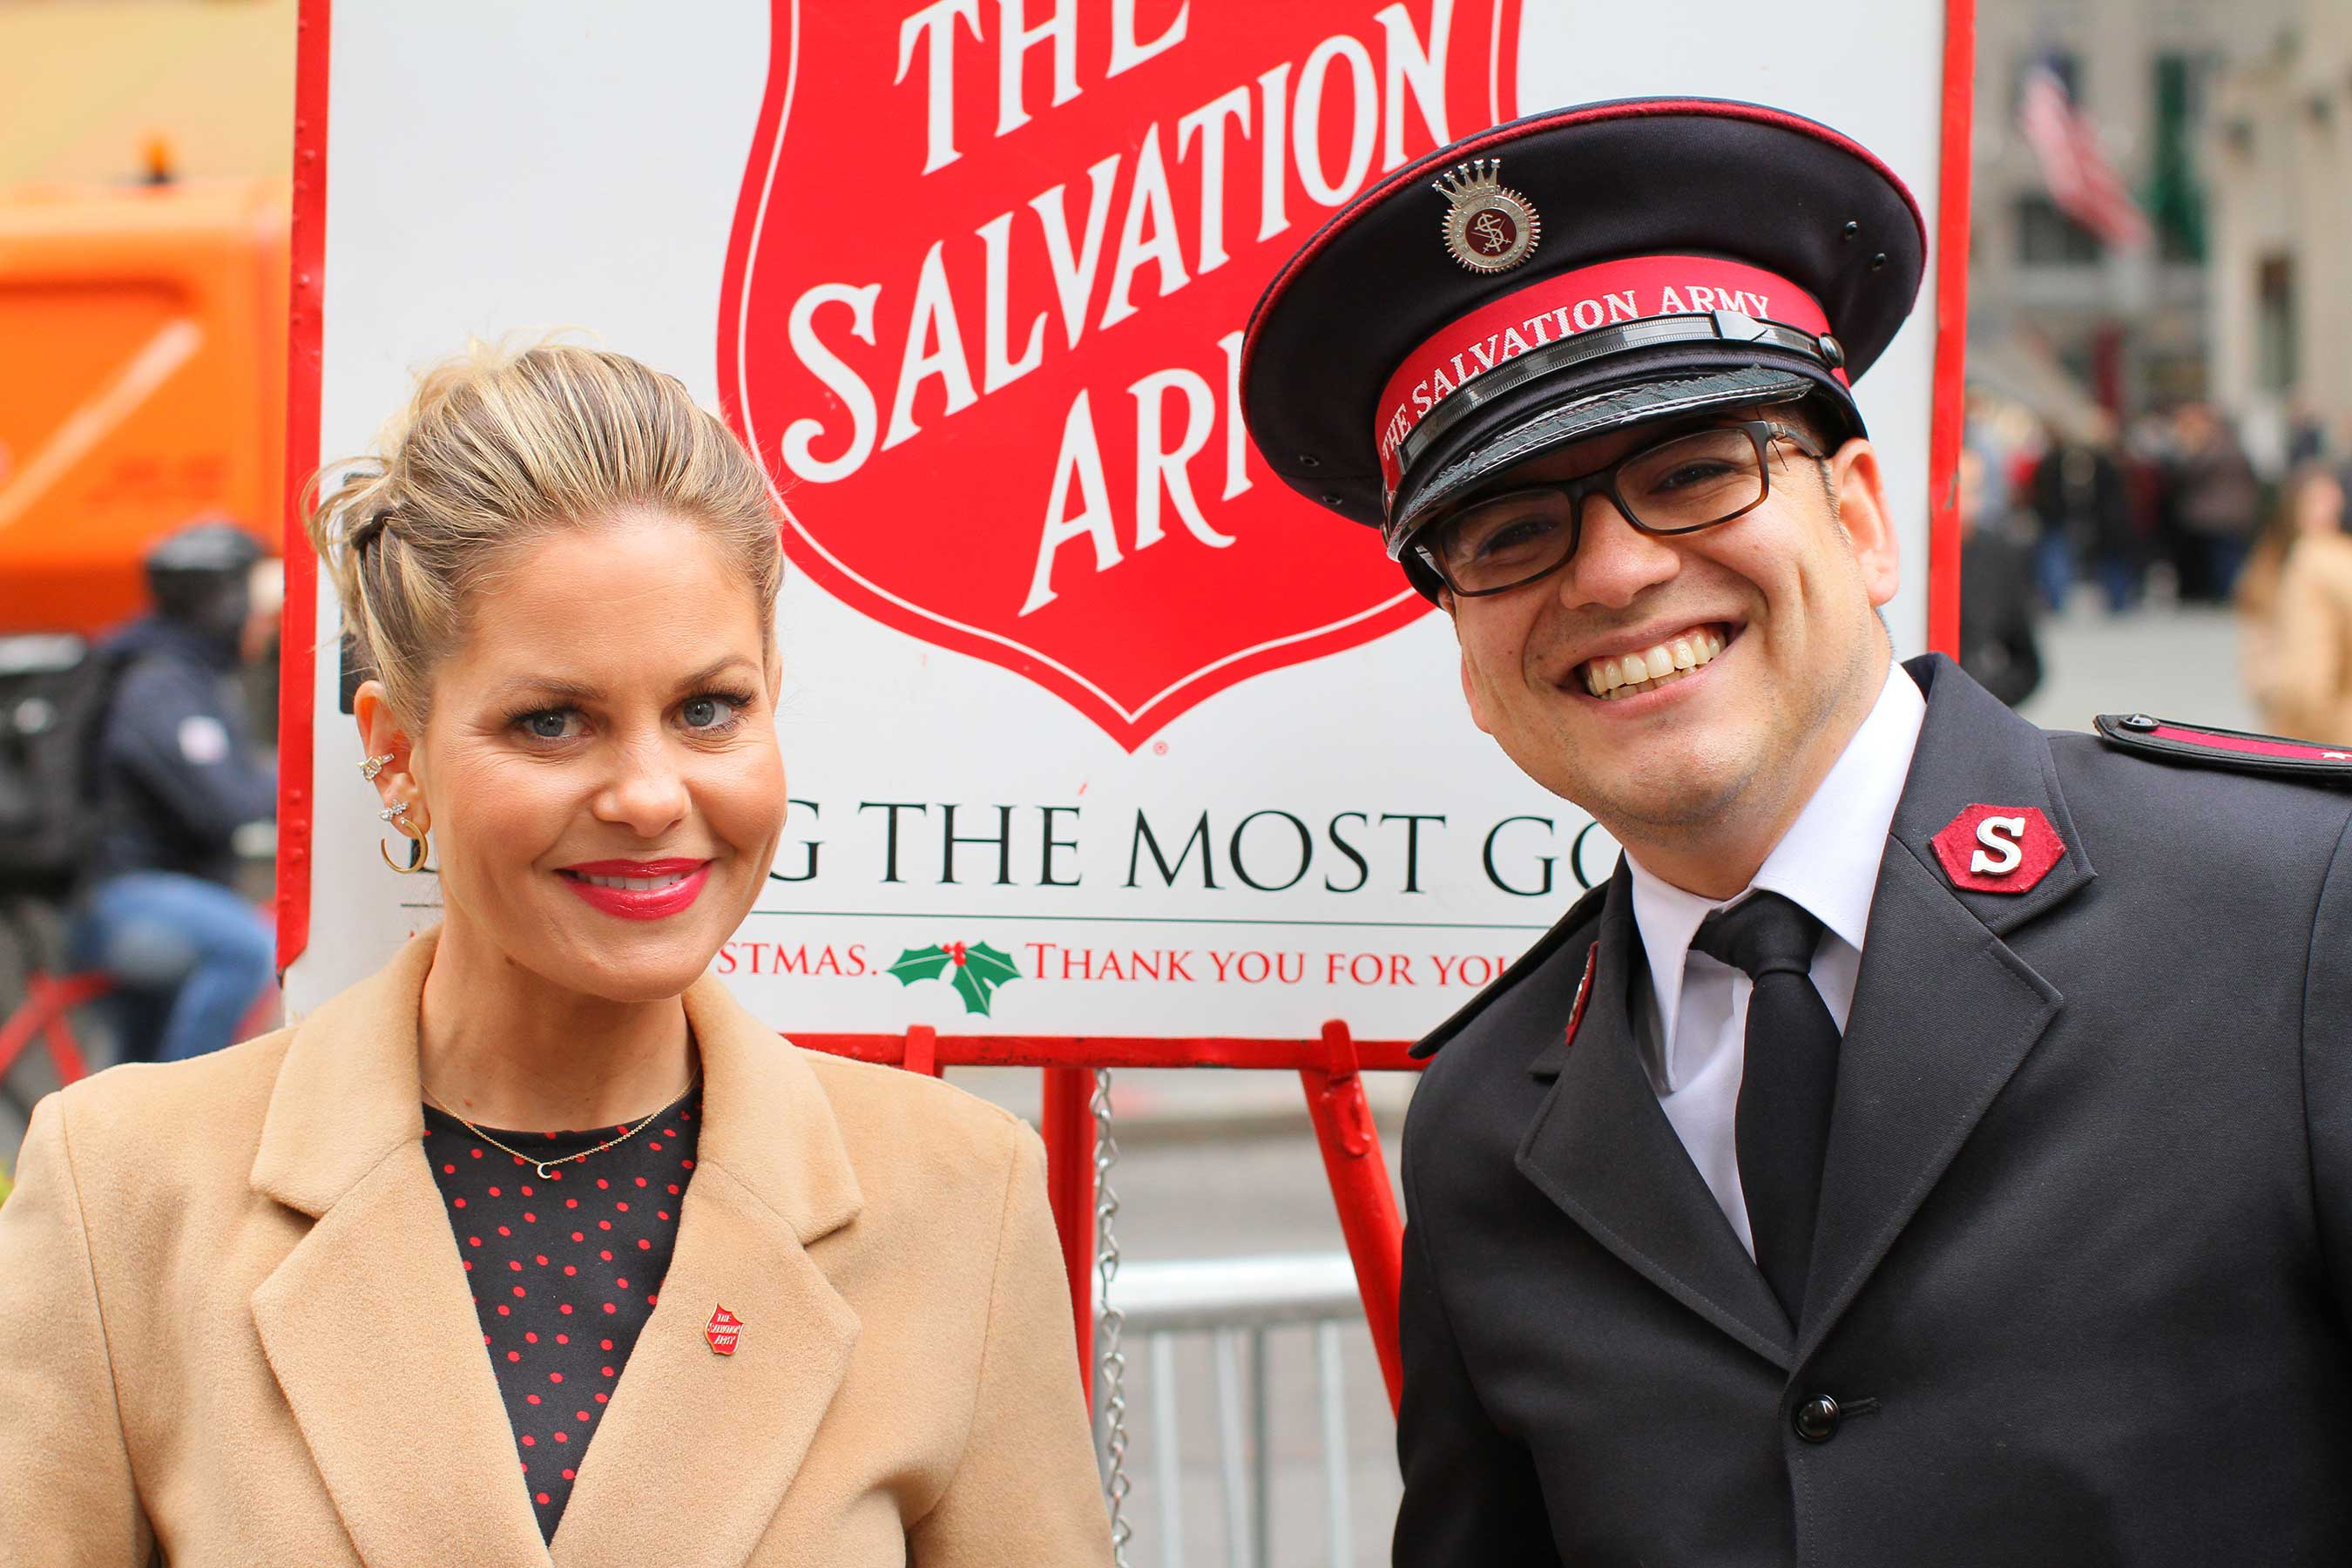 For a second year, The Salvation Army has enlisted actress, executive producer and New York Times best-selling author Candace Cameron Bure to encourage others to join the fight to combat hunger, homelessness, and hopelessness as The Salvation Army enters its 129th red kettle season.